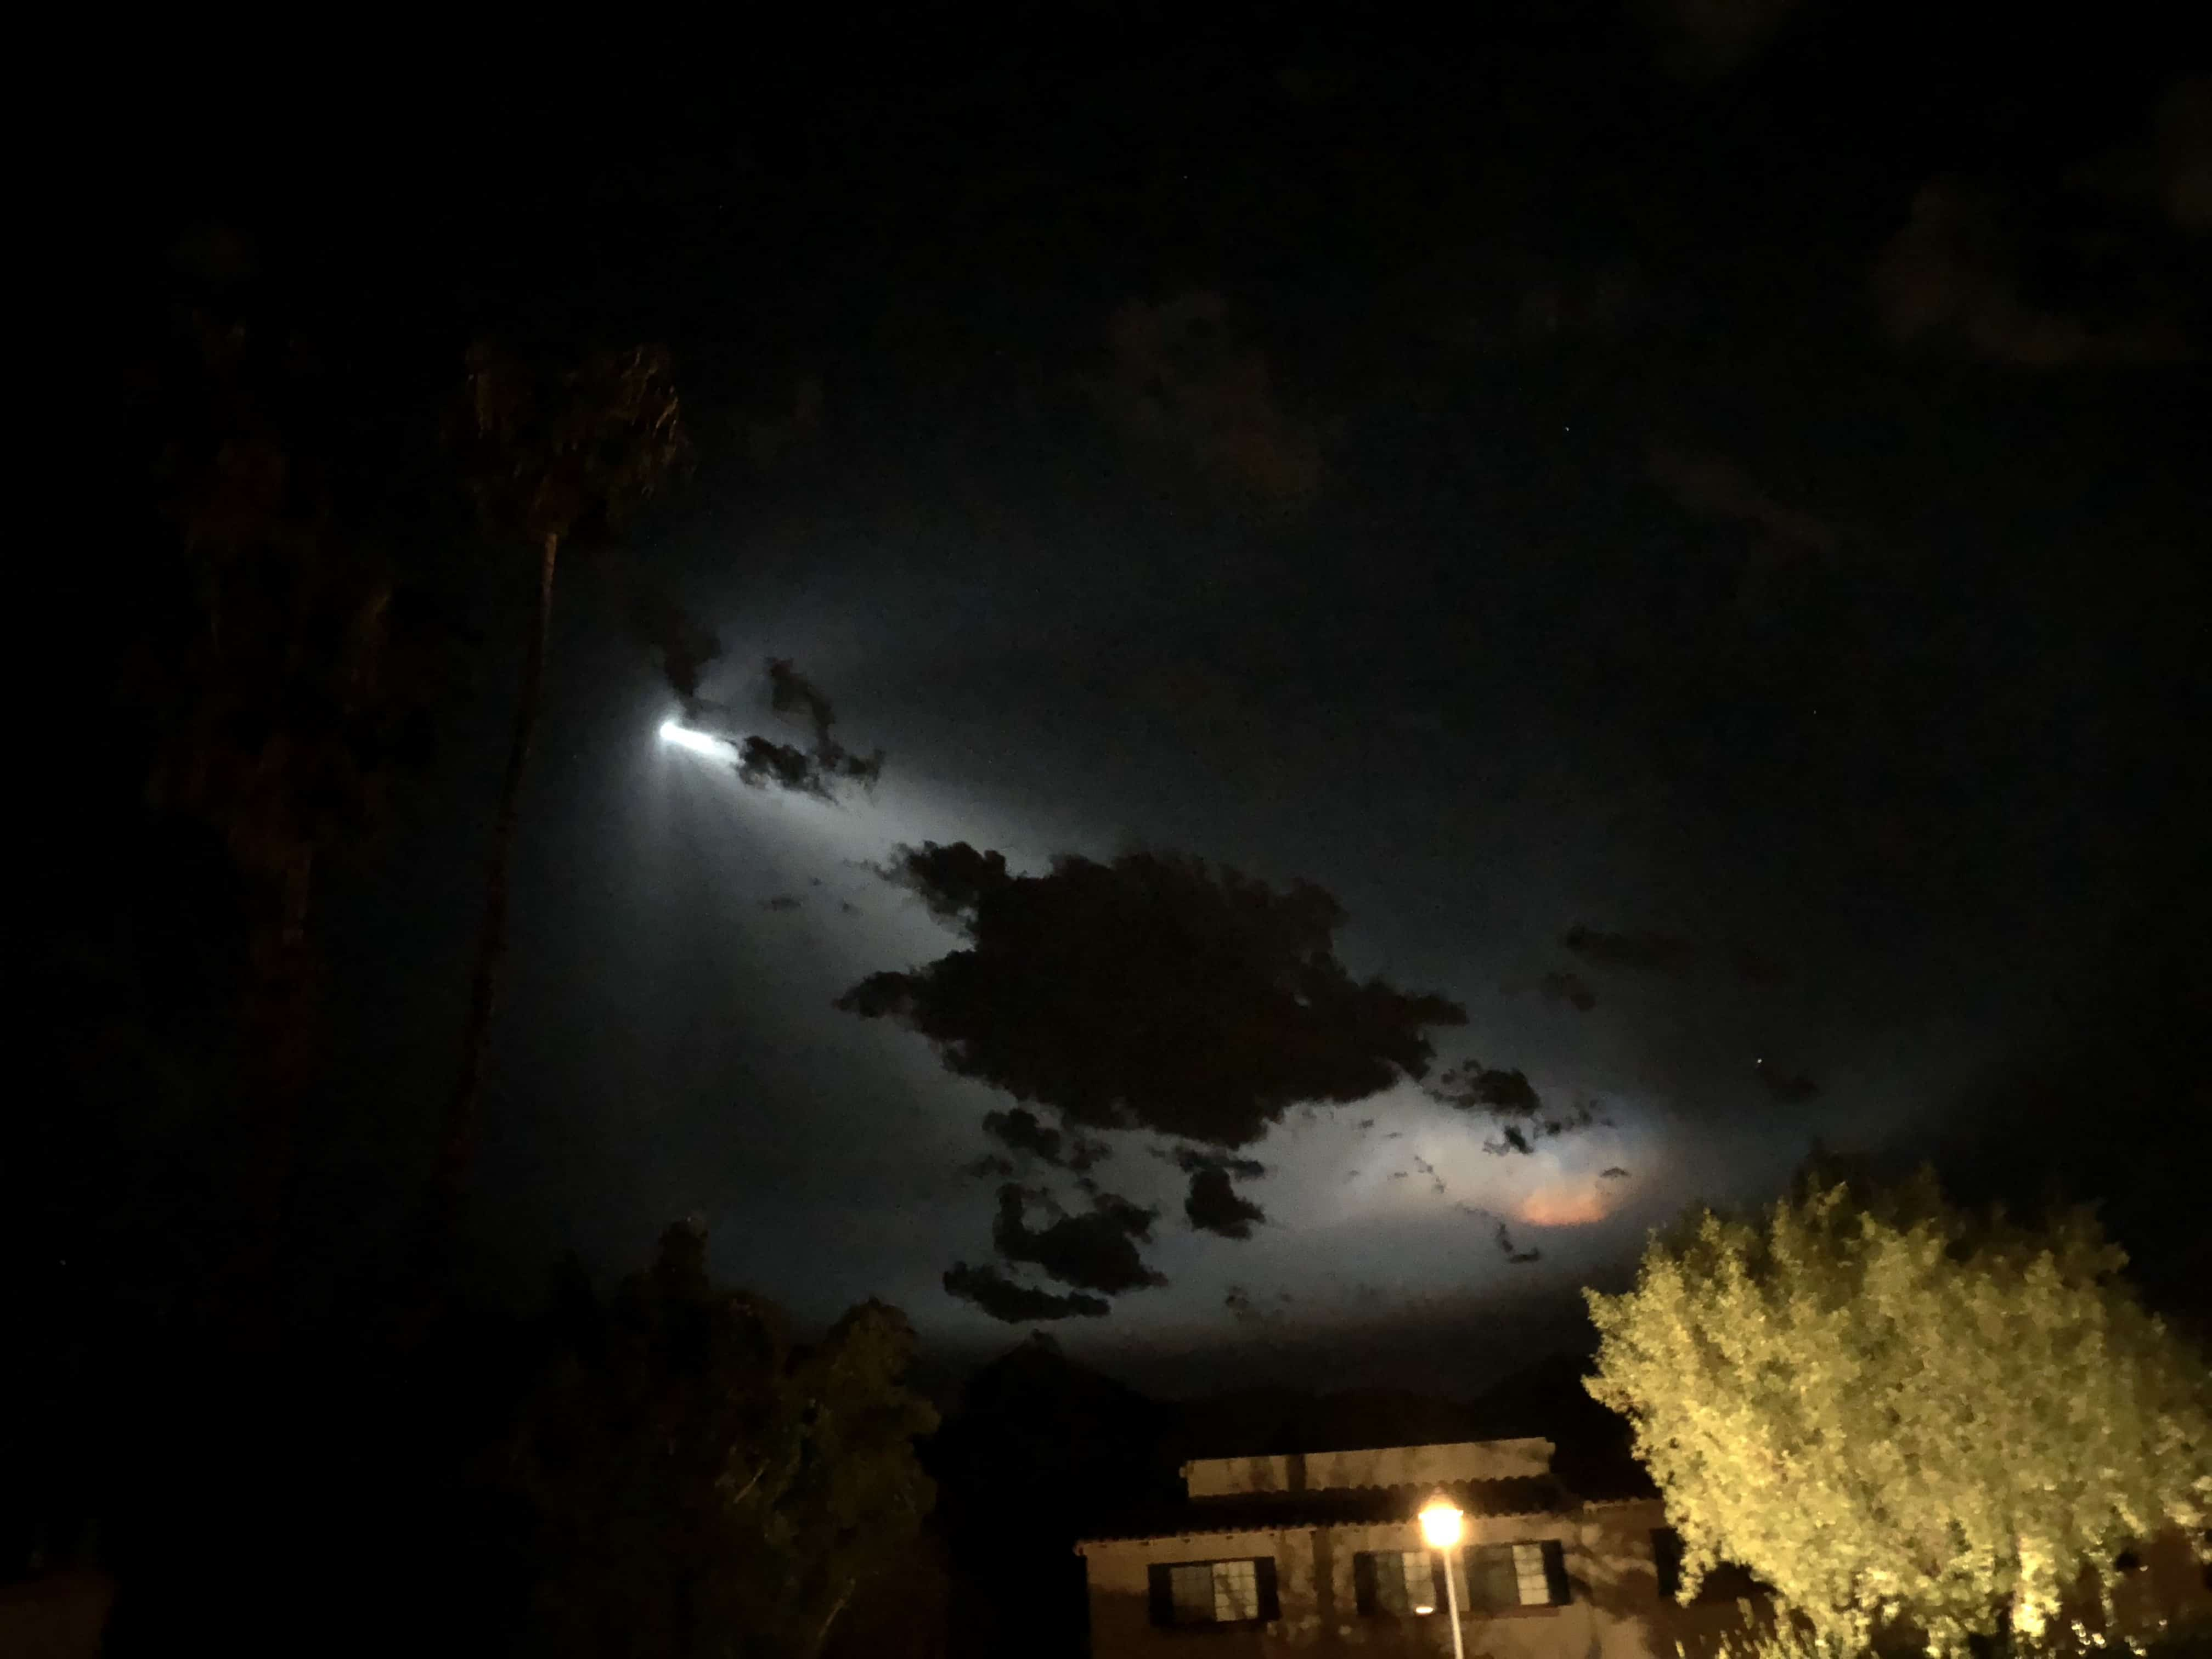 Falcon 9 rocket lights up the sky over Palm Springs, Southern